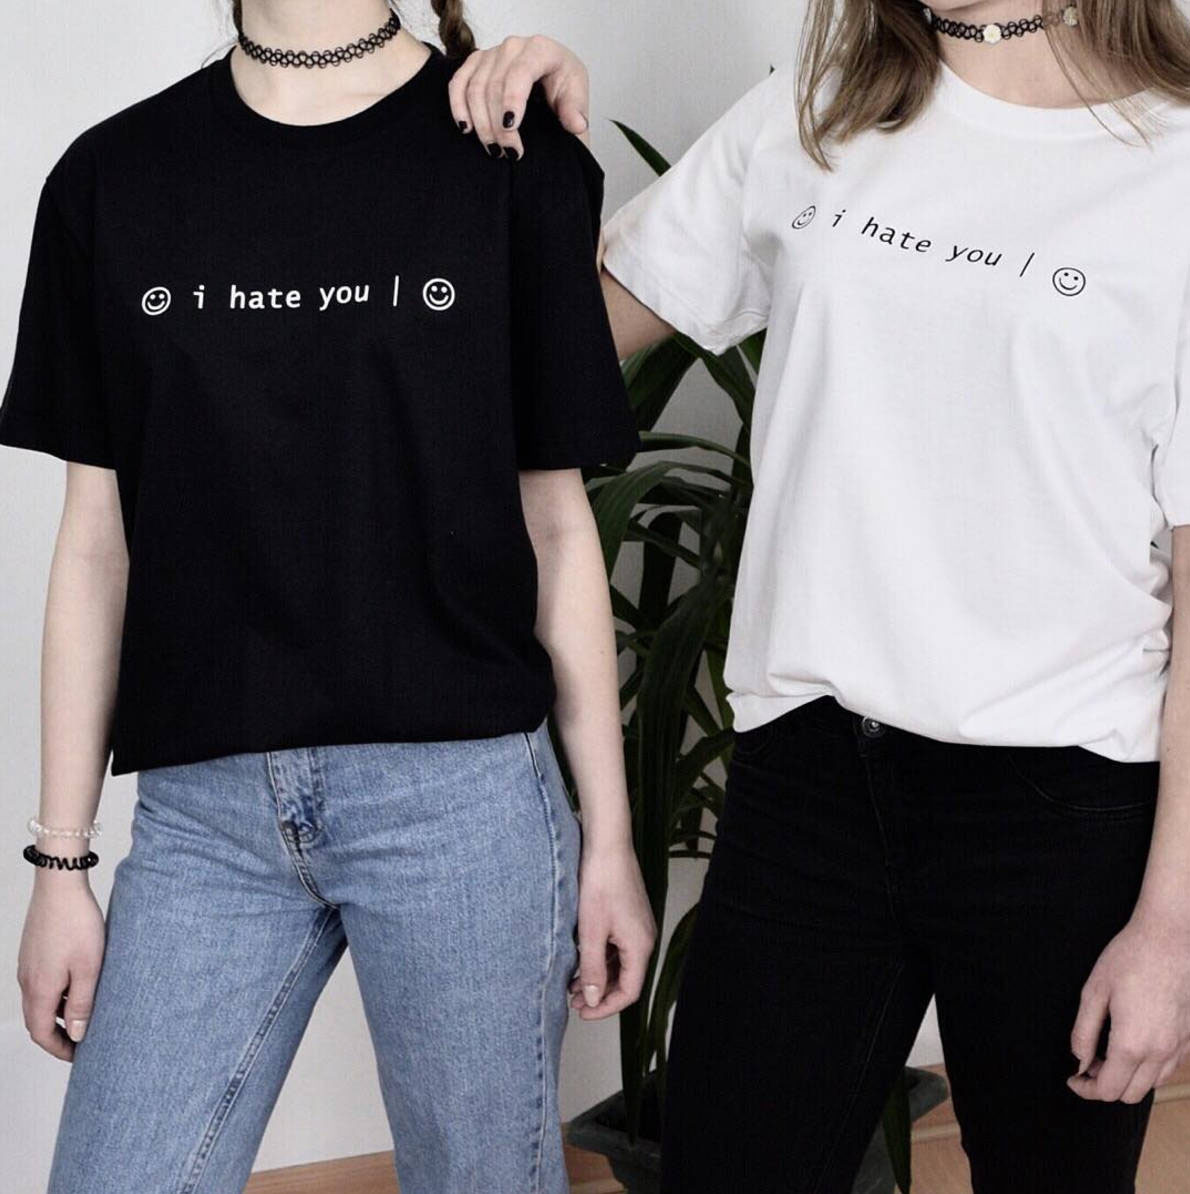 Black t shirt grunge - I Hate You Smiley Face T Shirt Tumblr Inspired Pastel Pale Grunge Aesthetic Tee 2017